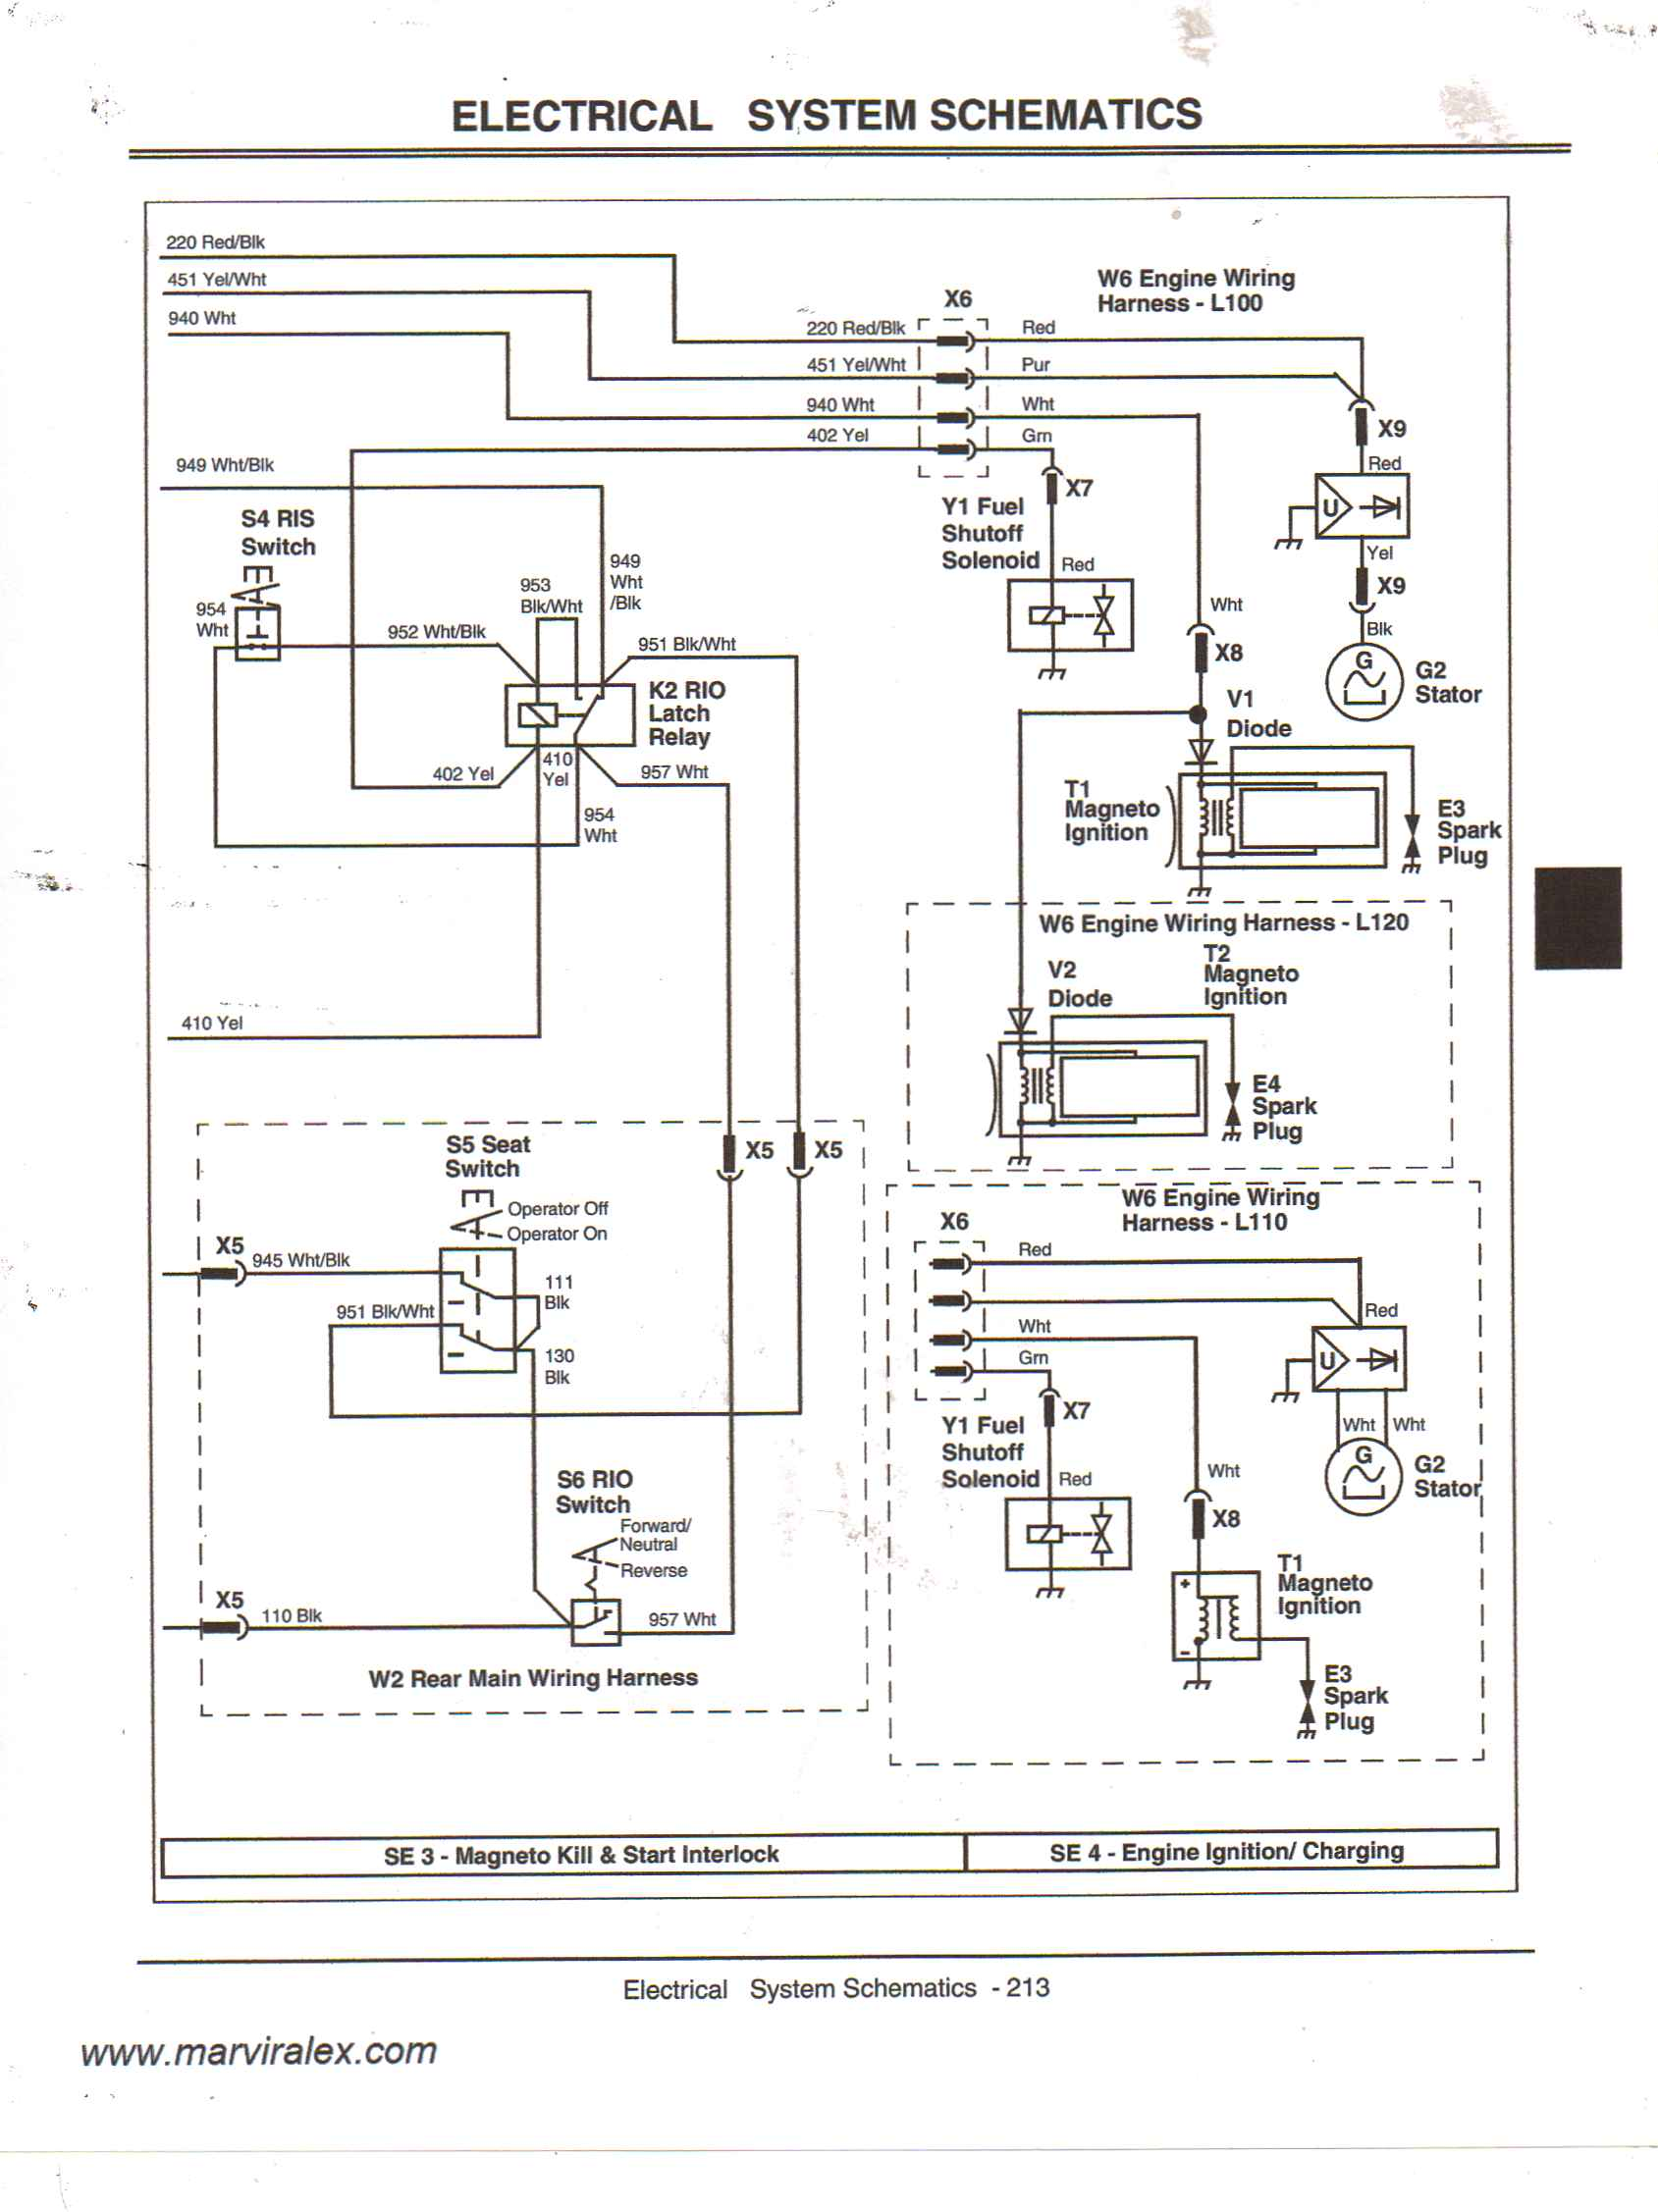 John Deere X540 Fuse Diagram -On Off Toggle Switch Wiring | Begeboy Wiring  Diagram Source | X540 John Deere Fuse Box |  | Begeboy Wiring Diagram Source